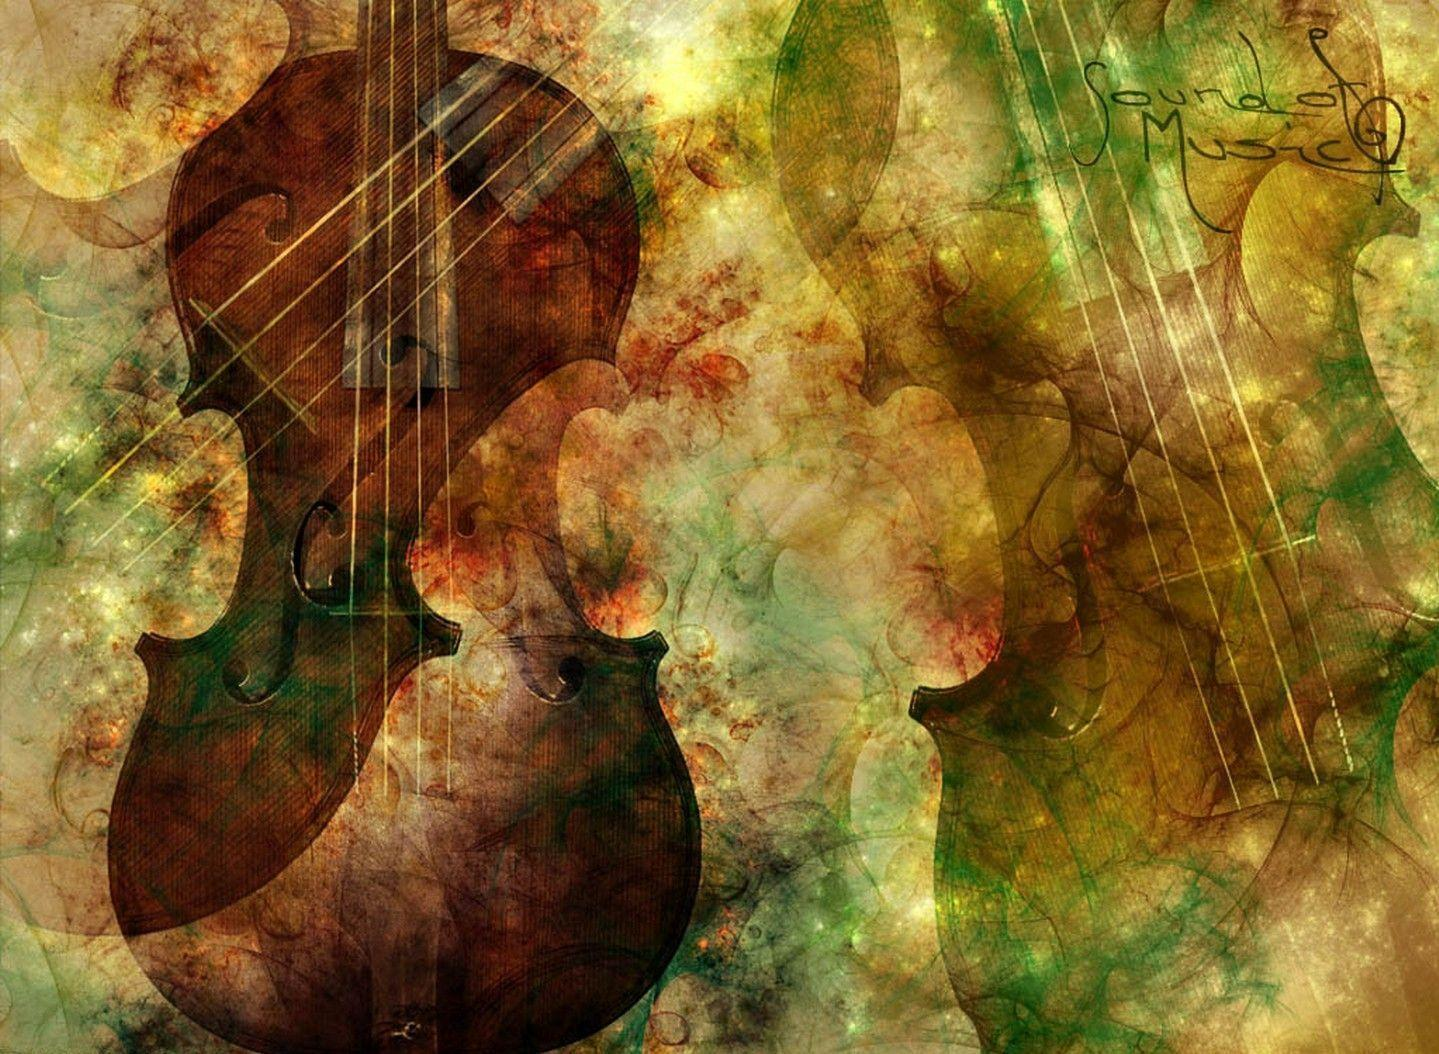 violin wallpaper – 1439×1054 High Definition Wallpaper, Background ...